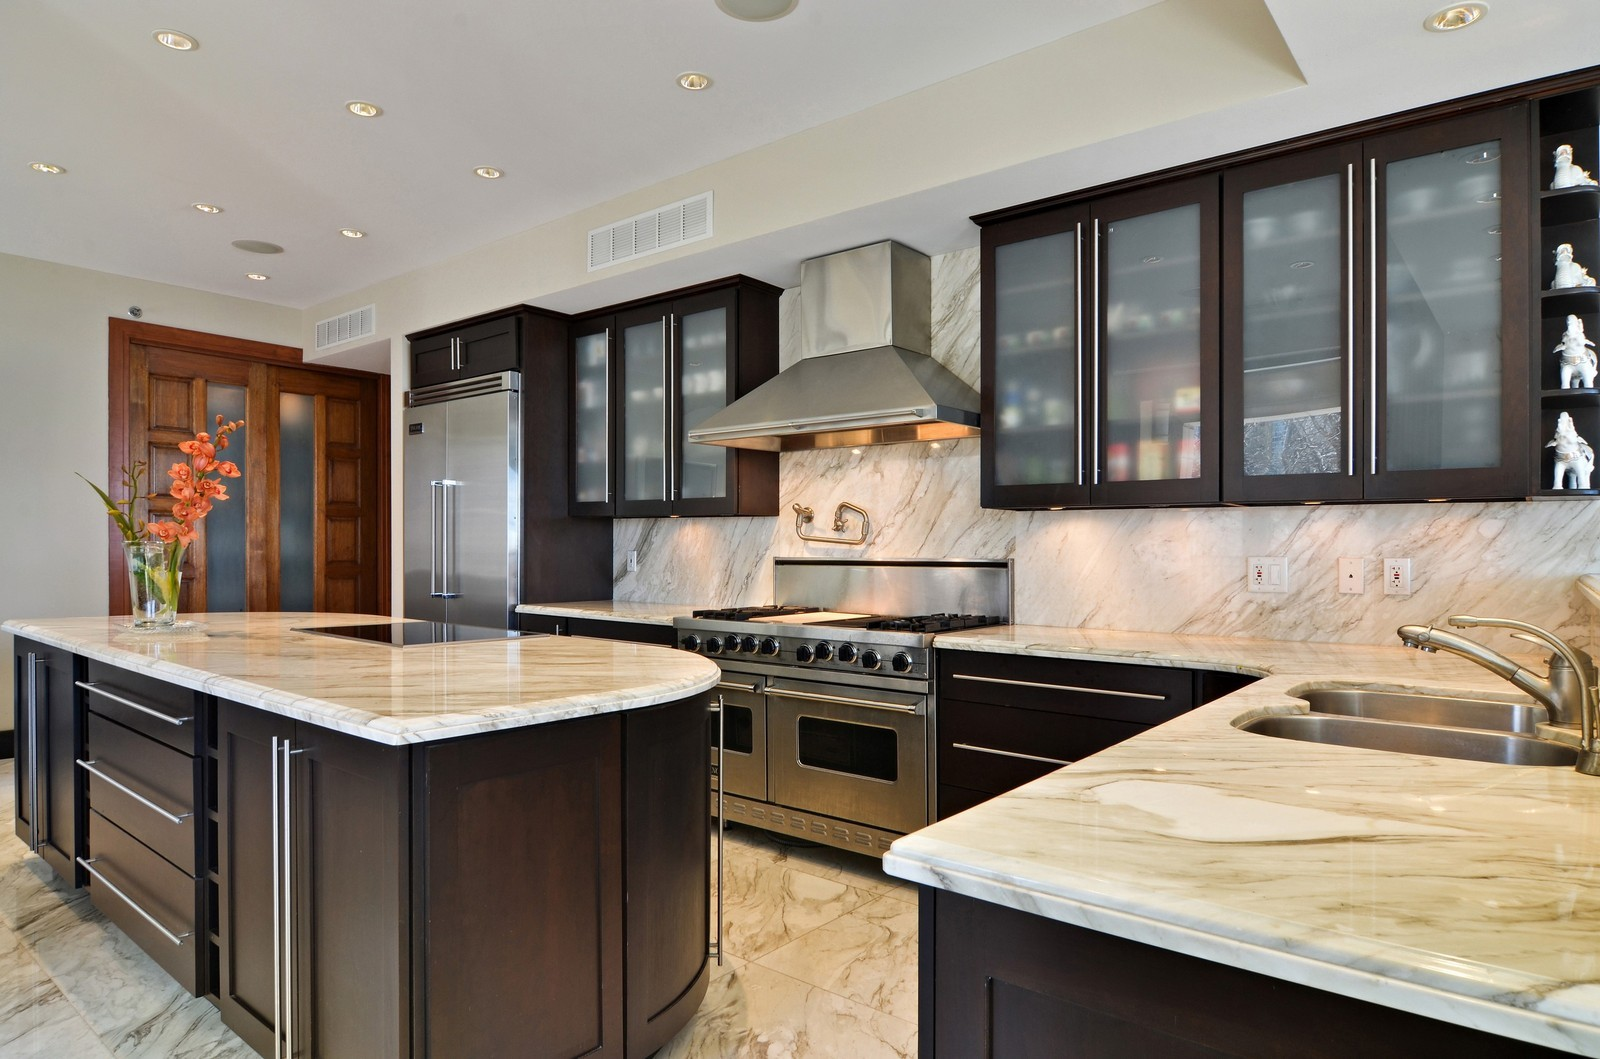 Real Estate Photography - 840 N Lake Shore Dr, Unit 201, Chicago, IL, 60611 - Kitchen